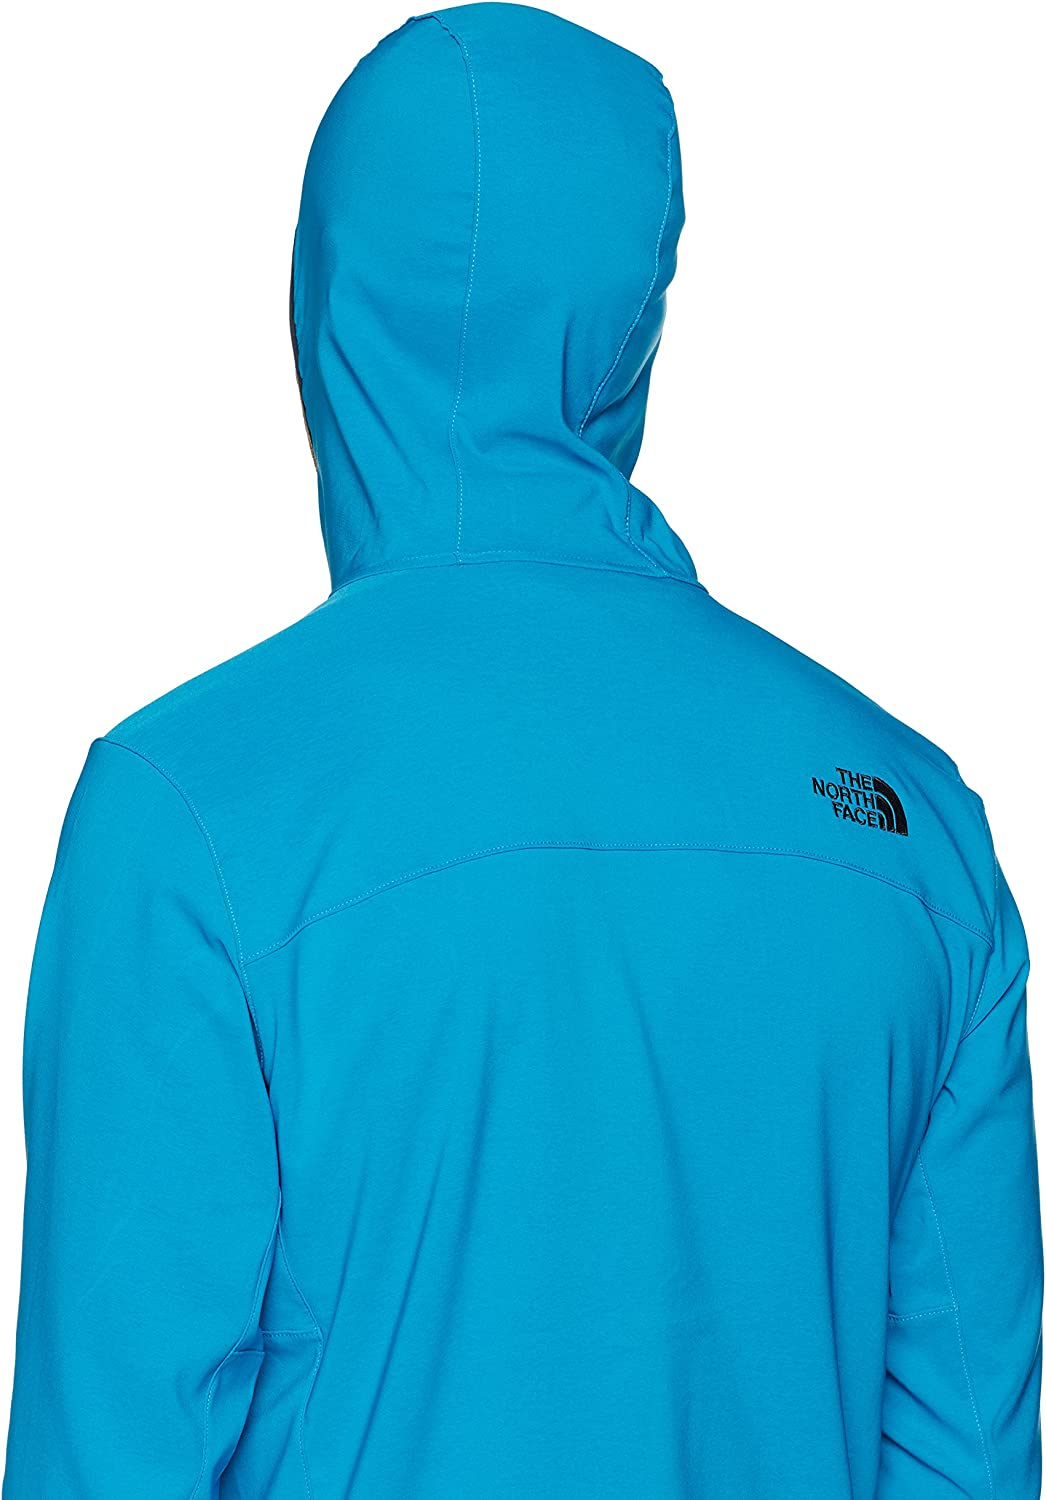 The North Face Mens Nimble Hoodie Hyper Blue, XX-Large